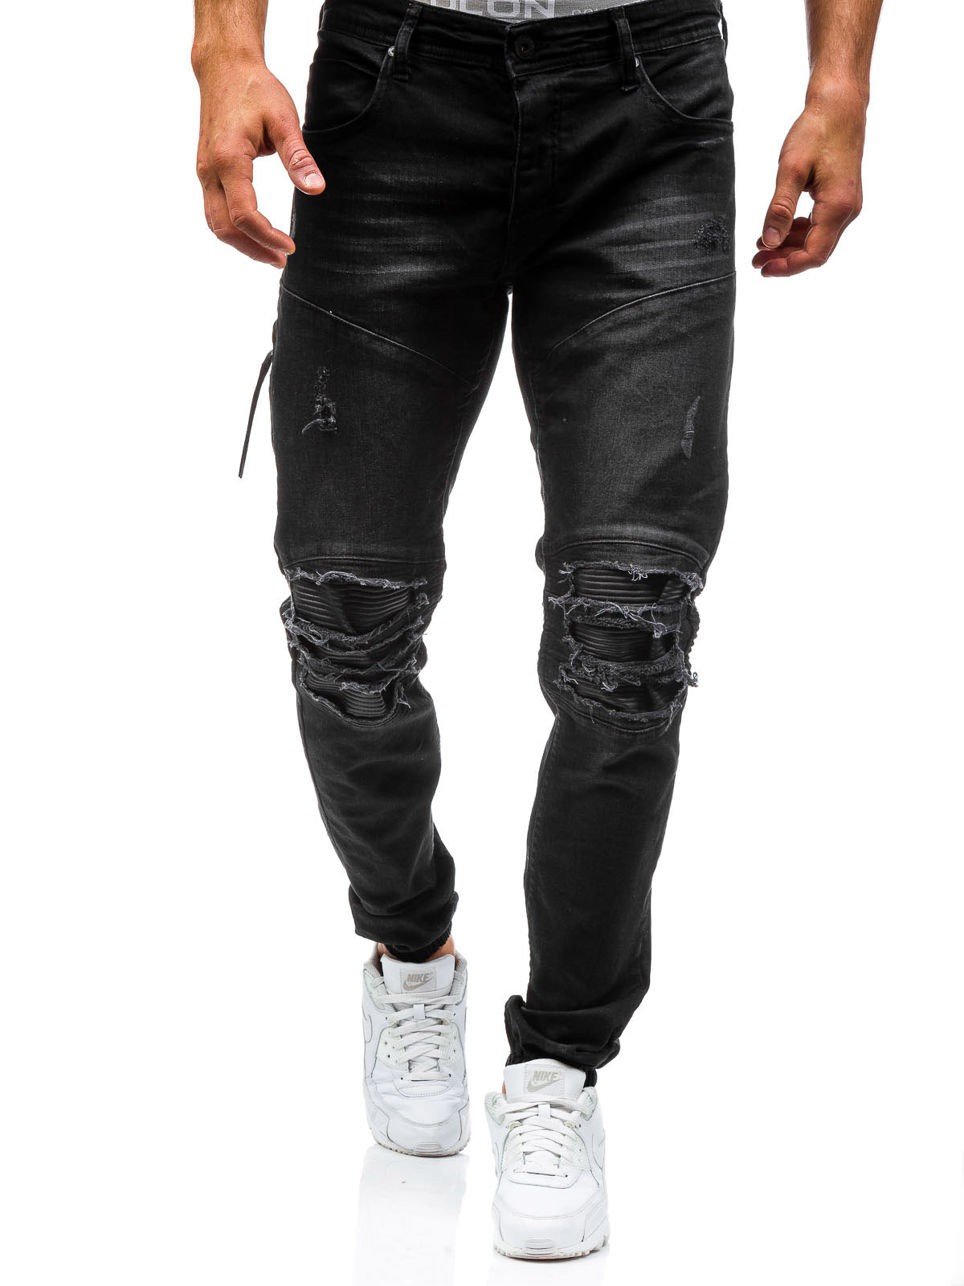 Brand Male New Jeans Fashion 2017 Slim Beggar Hole Jeans Men Casual Pants Man Trousers Designer Mens Jeans hot new arrival mens jeans white hole jeans beggar style pants male taper straight slim high quality men pants plus size mb324